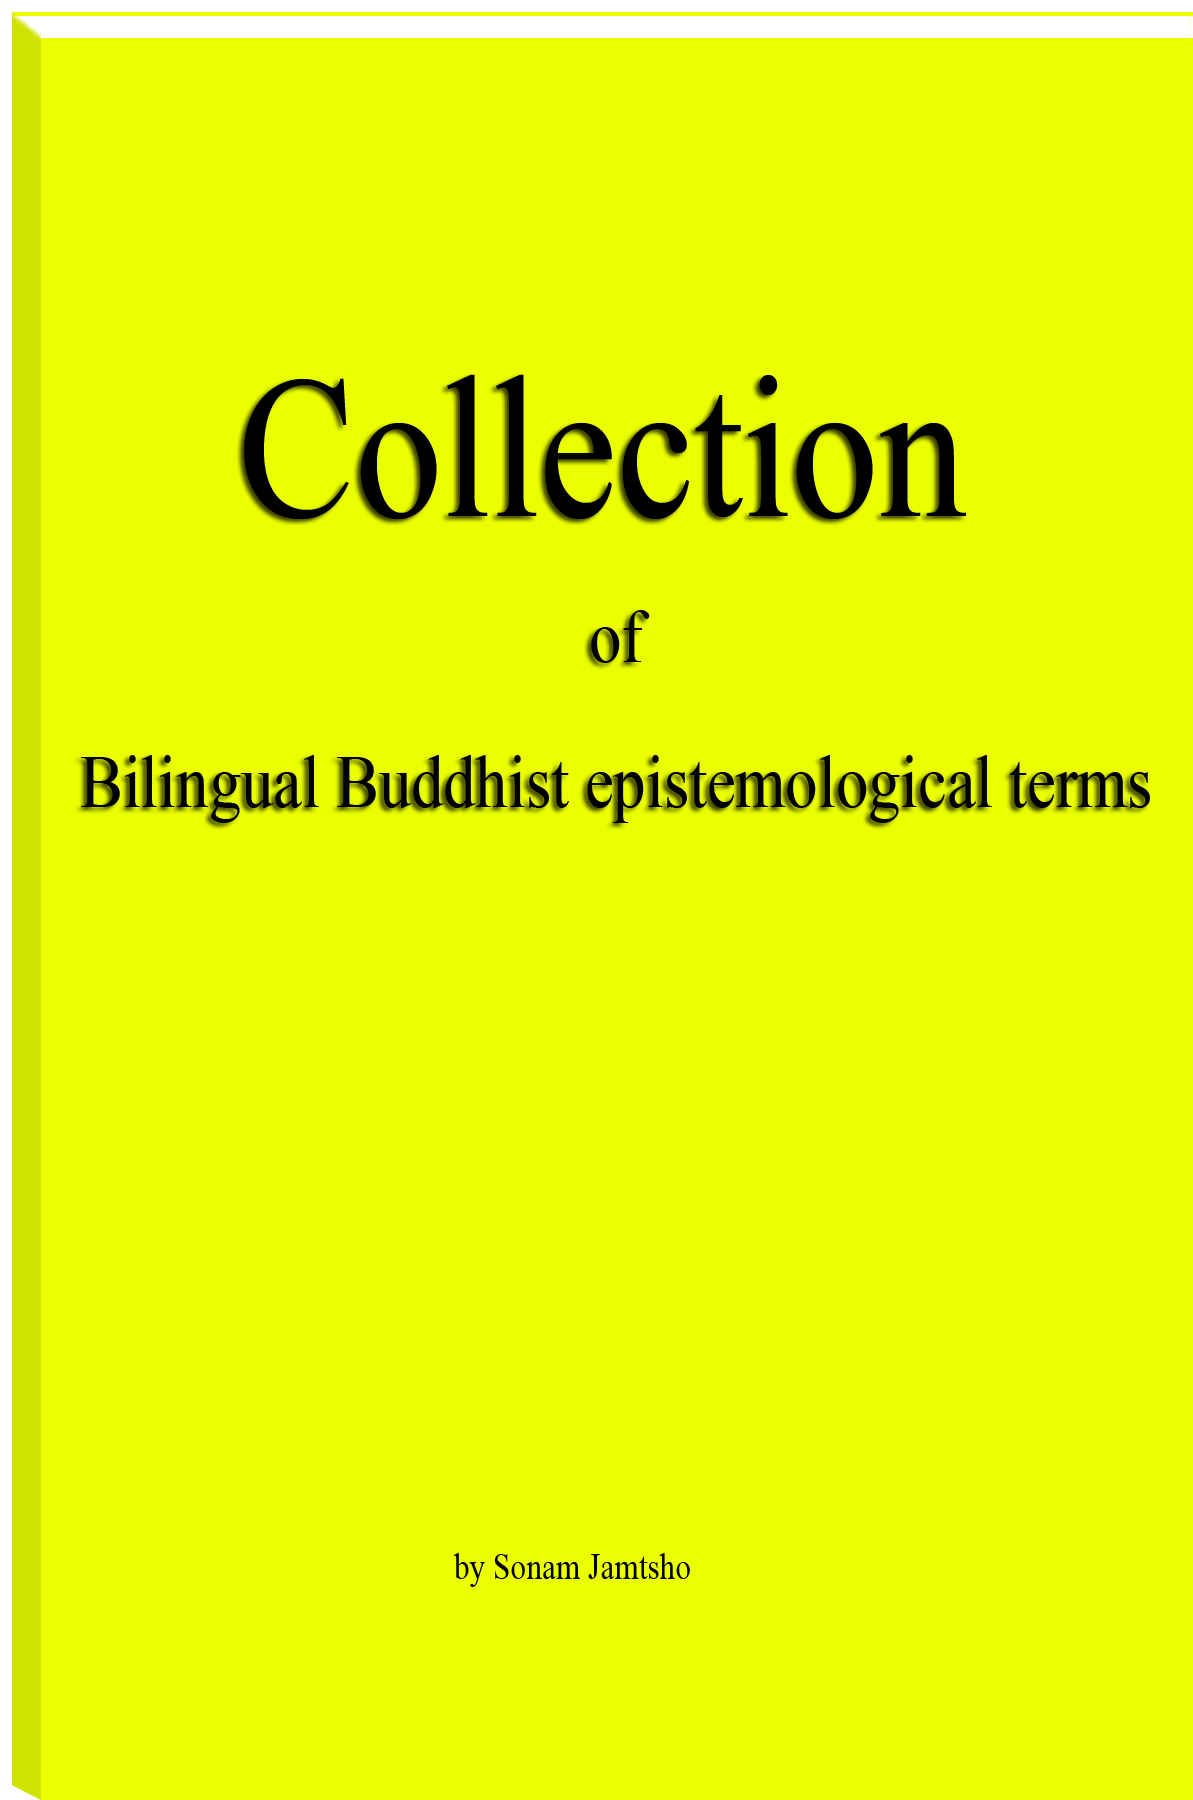 Collection of Bilingual Buddhist epistemological terms by Sonam Jamtsho